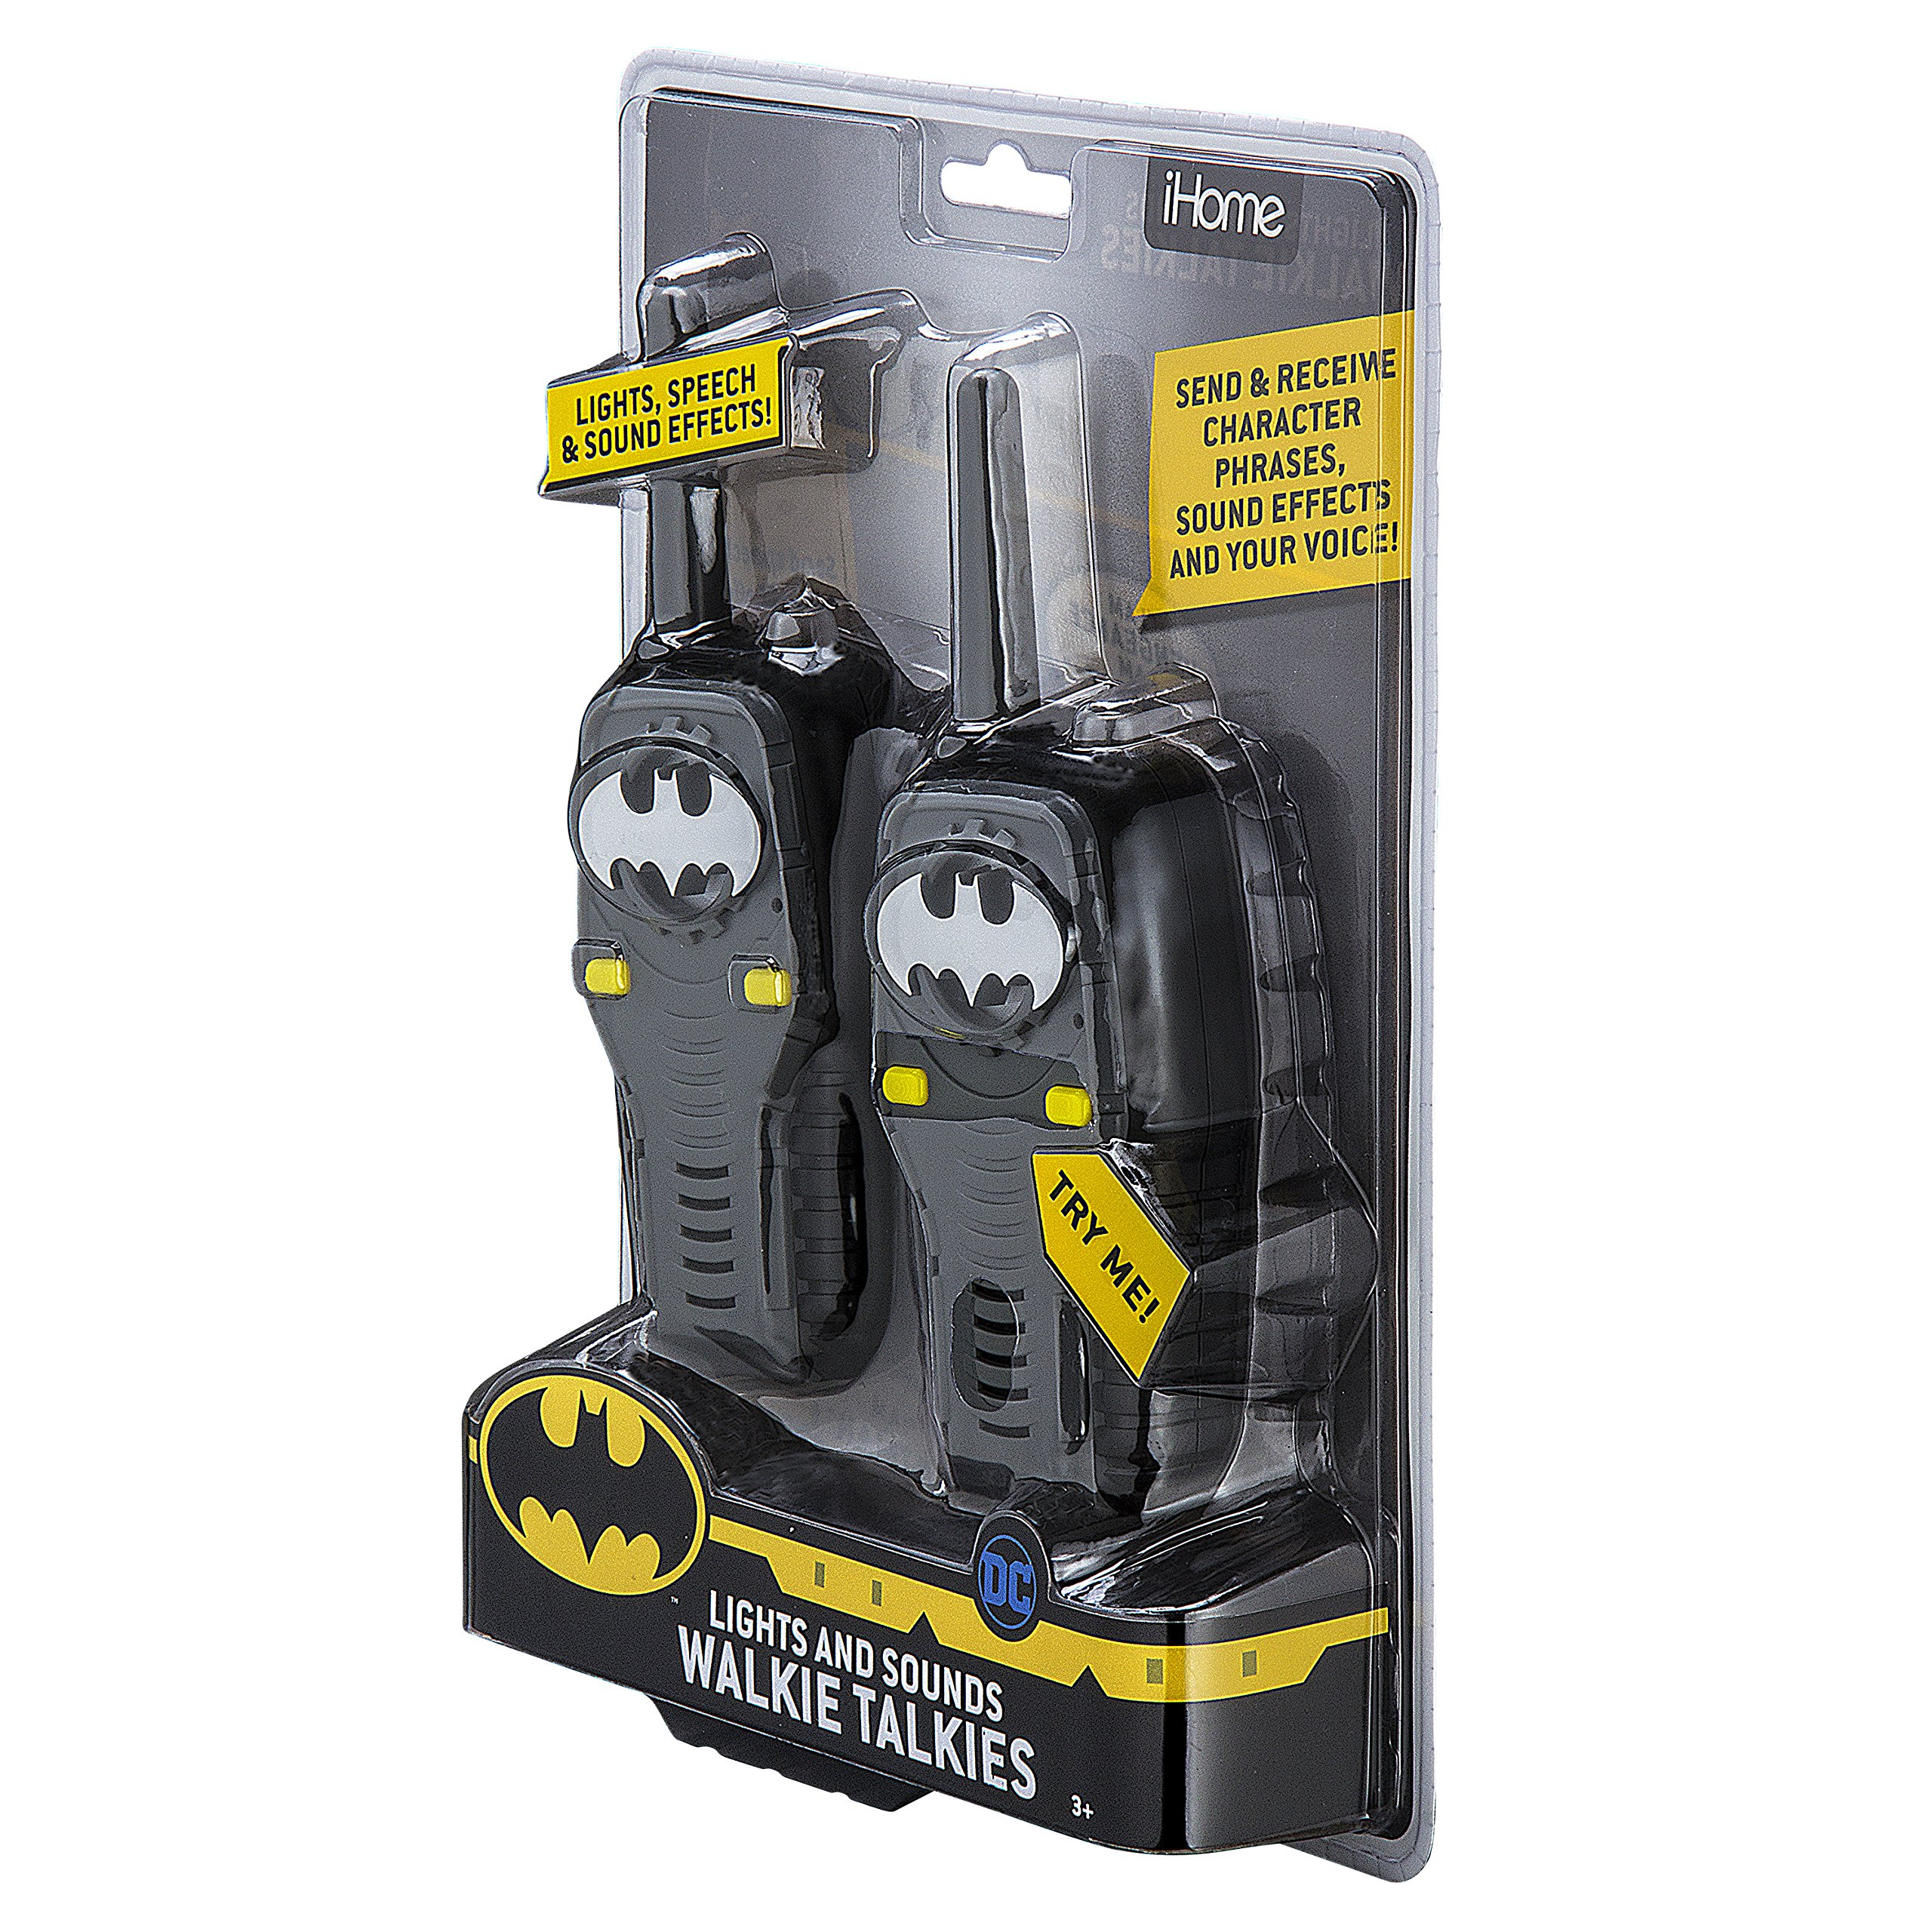 Batman FRS Walkie Talkies for Kids with Lights and Sounds Kid Friendly Easy to Use by eKids (Image #8)